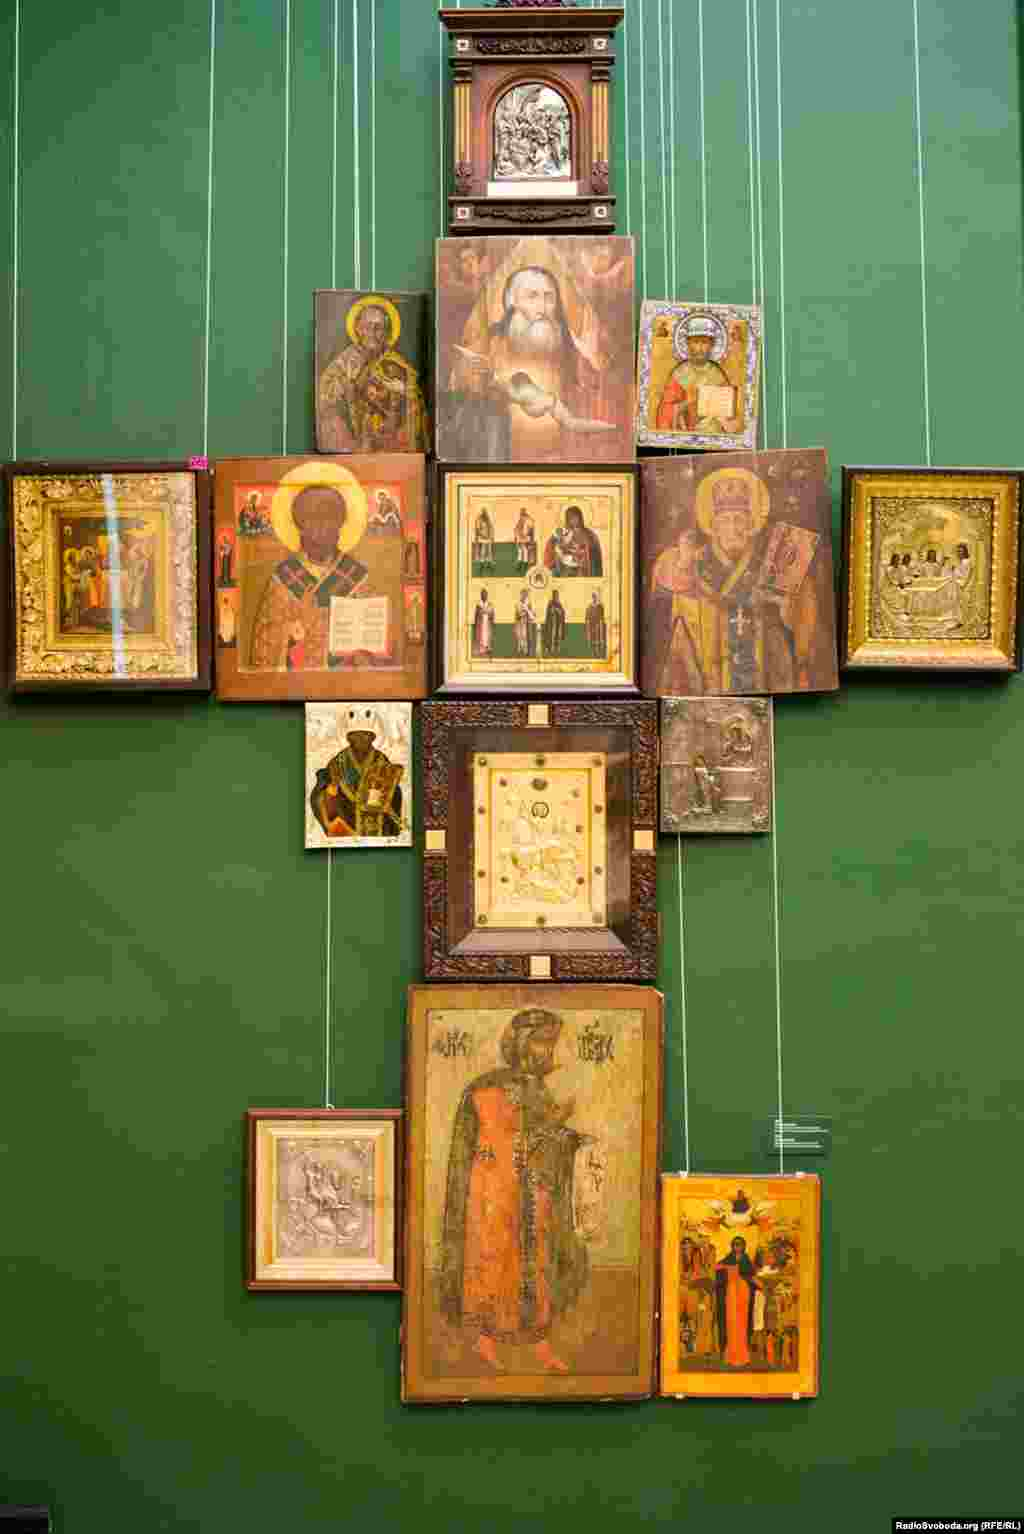 Yanukovych had a large collection of religious icons.